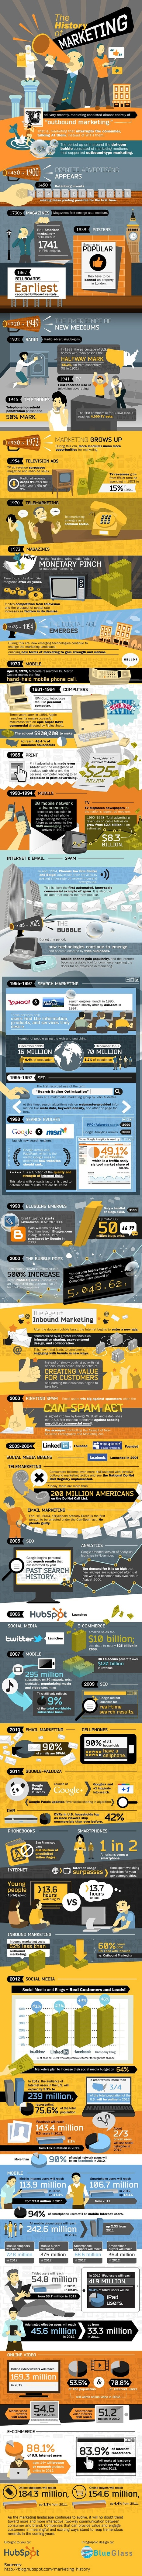 A (Kind of) Brief History of Marketing (Infographic) | MarketingHits | Scoop.it